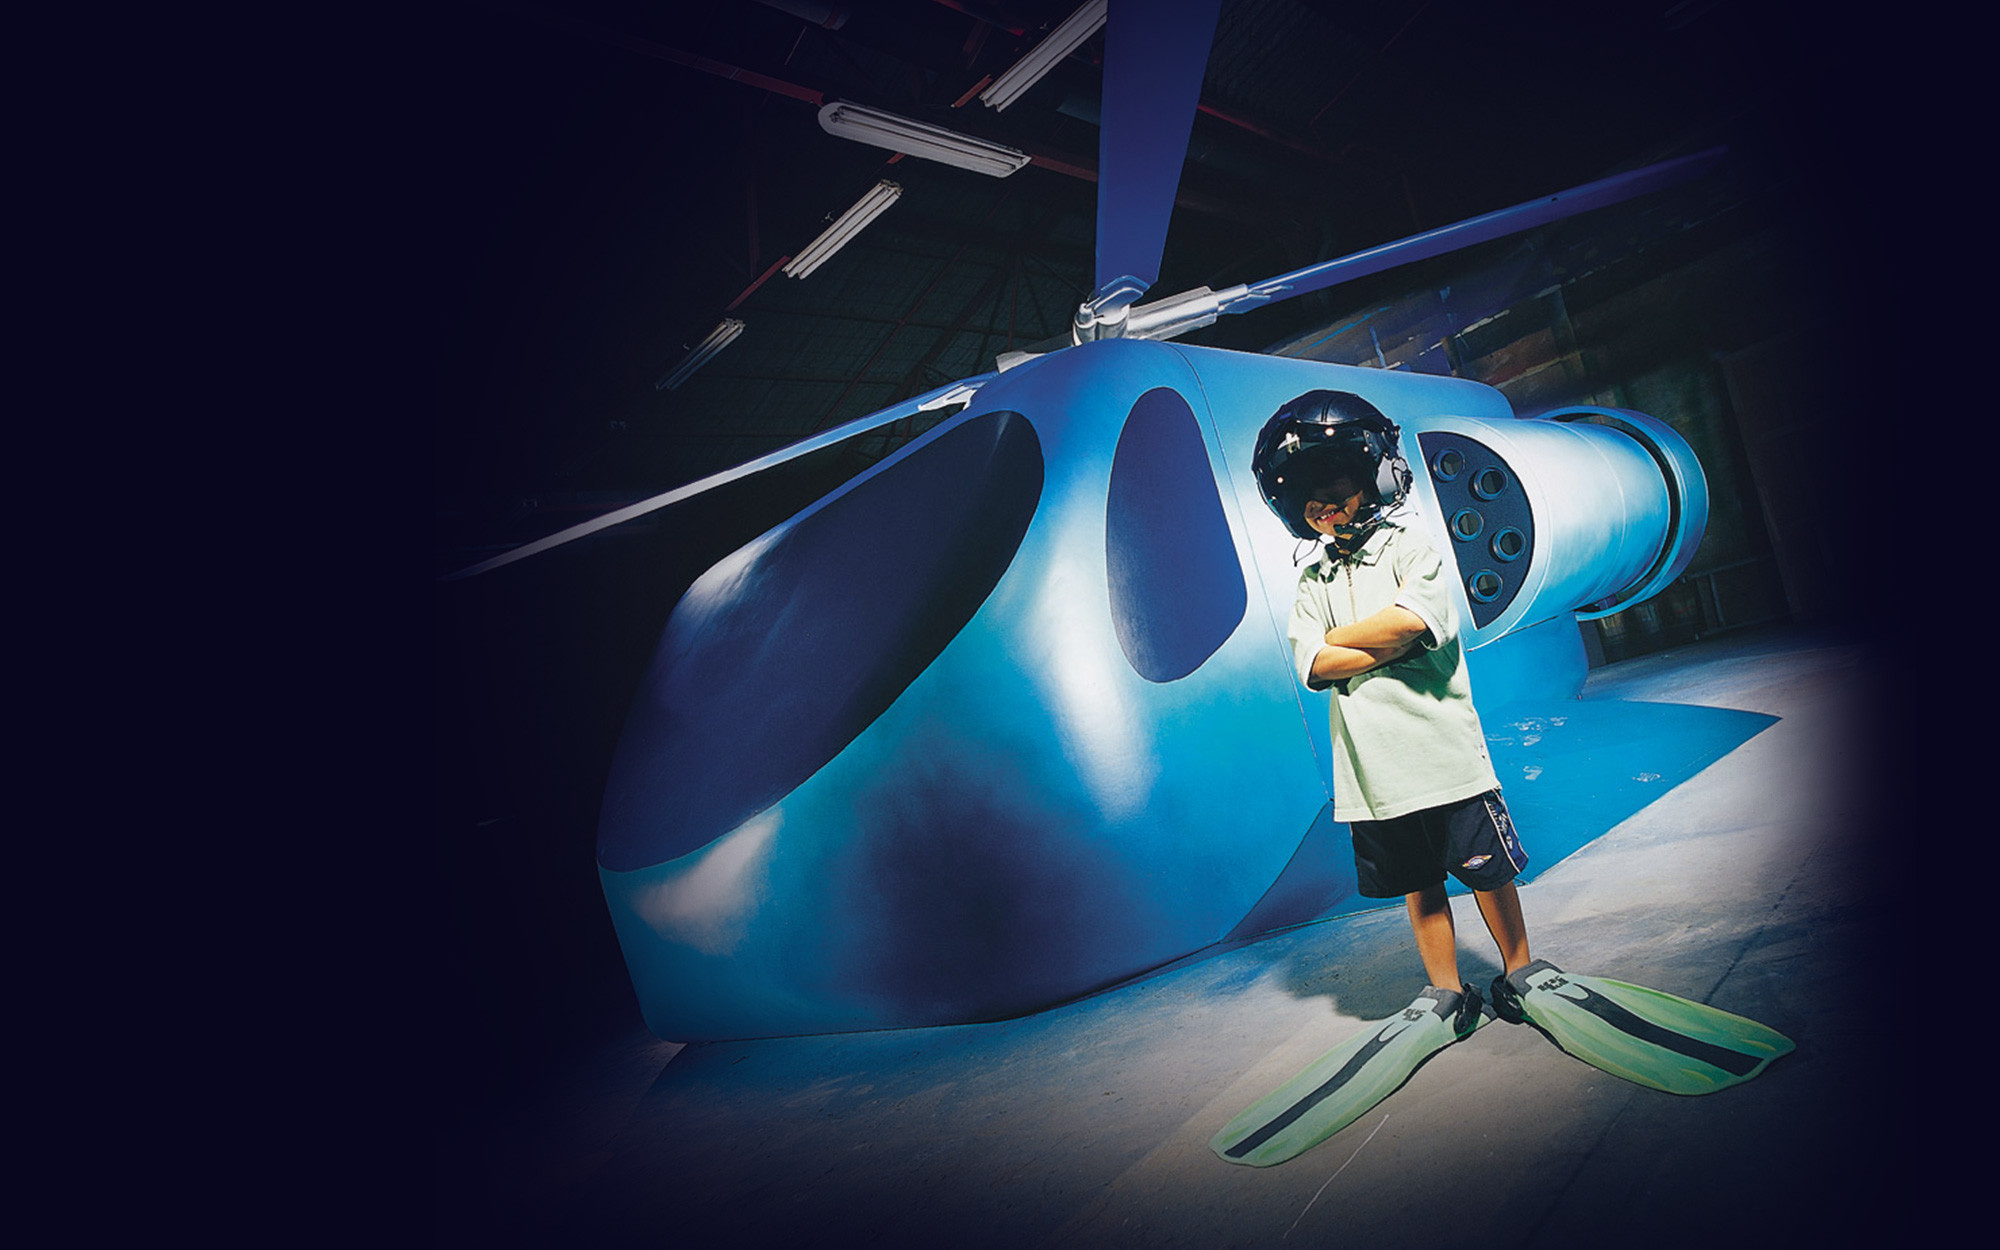 A young boy in a helicopter pilot helmet and flippers stands cross armed in front of a boxy helicopter shaped simulator